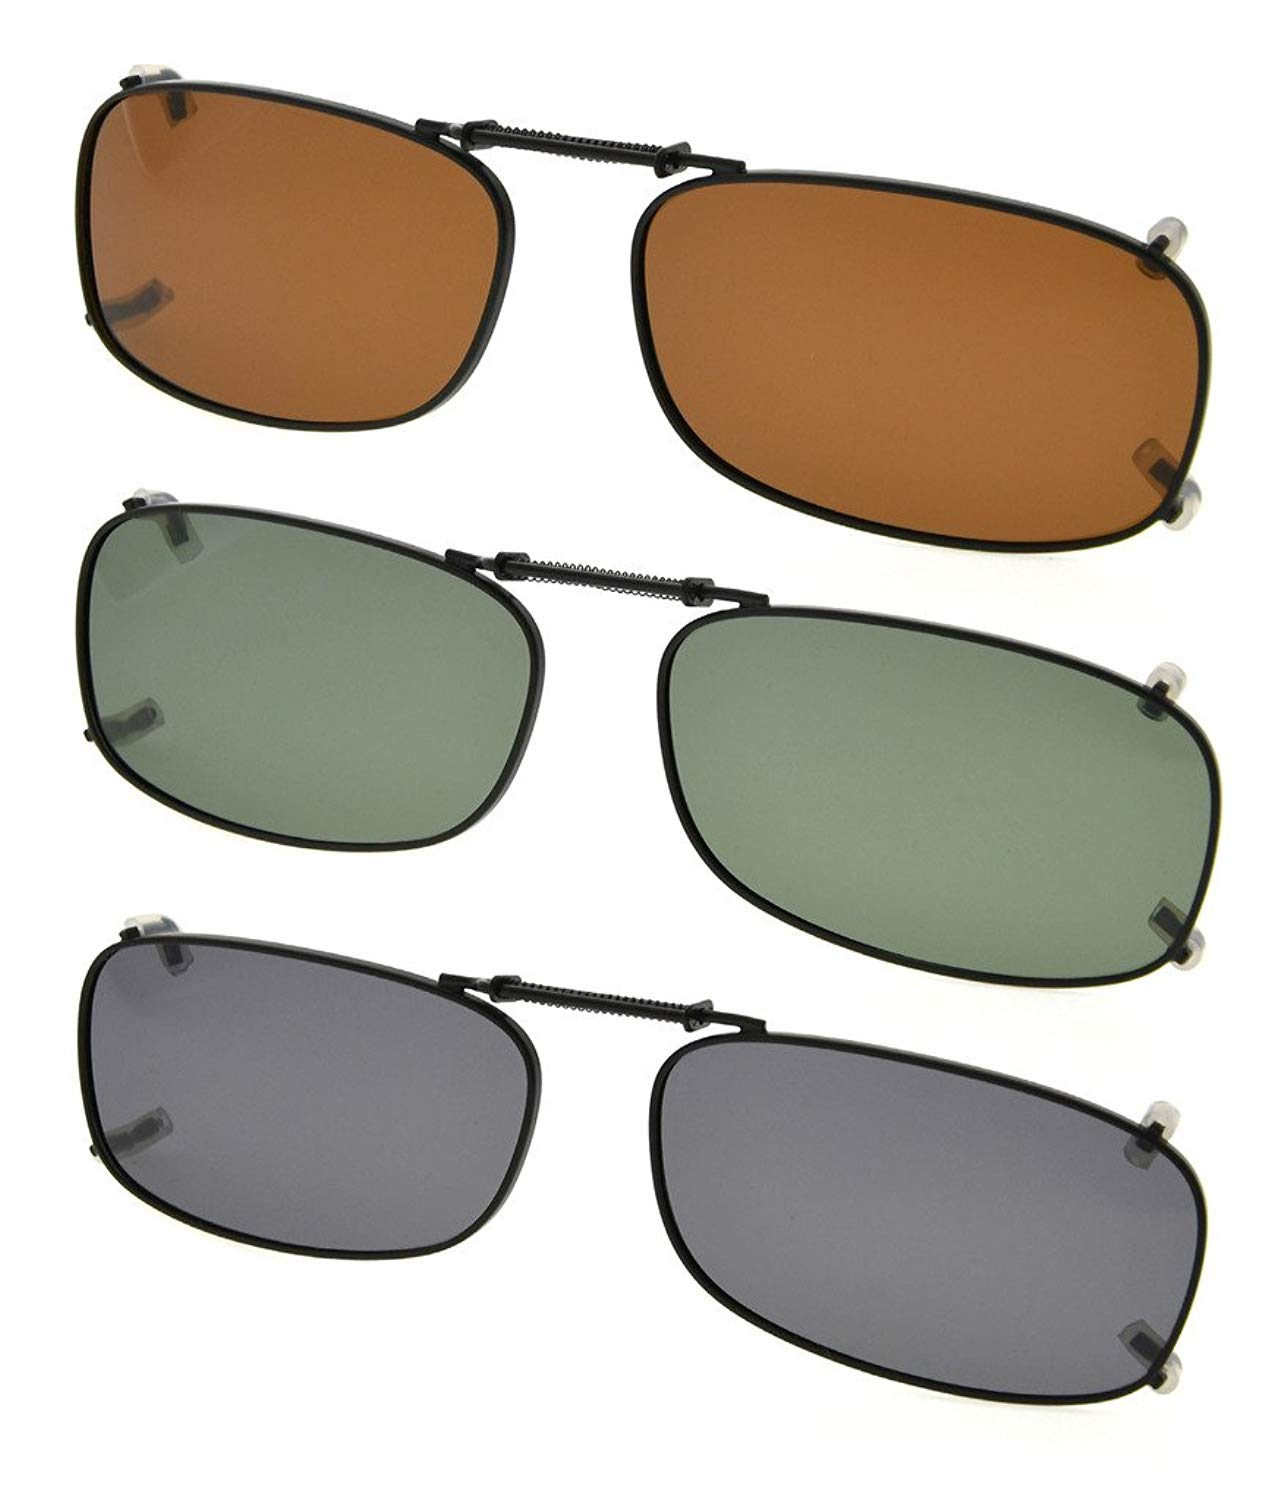 8c3f33468a Eyekepper Grey Brown G15 Lens 3-pack Clip-on Polarized Sunglasses 2